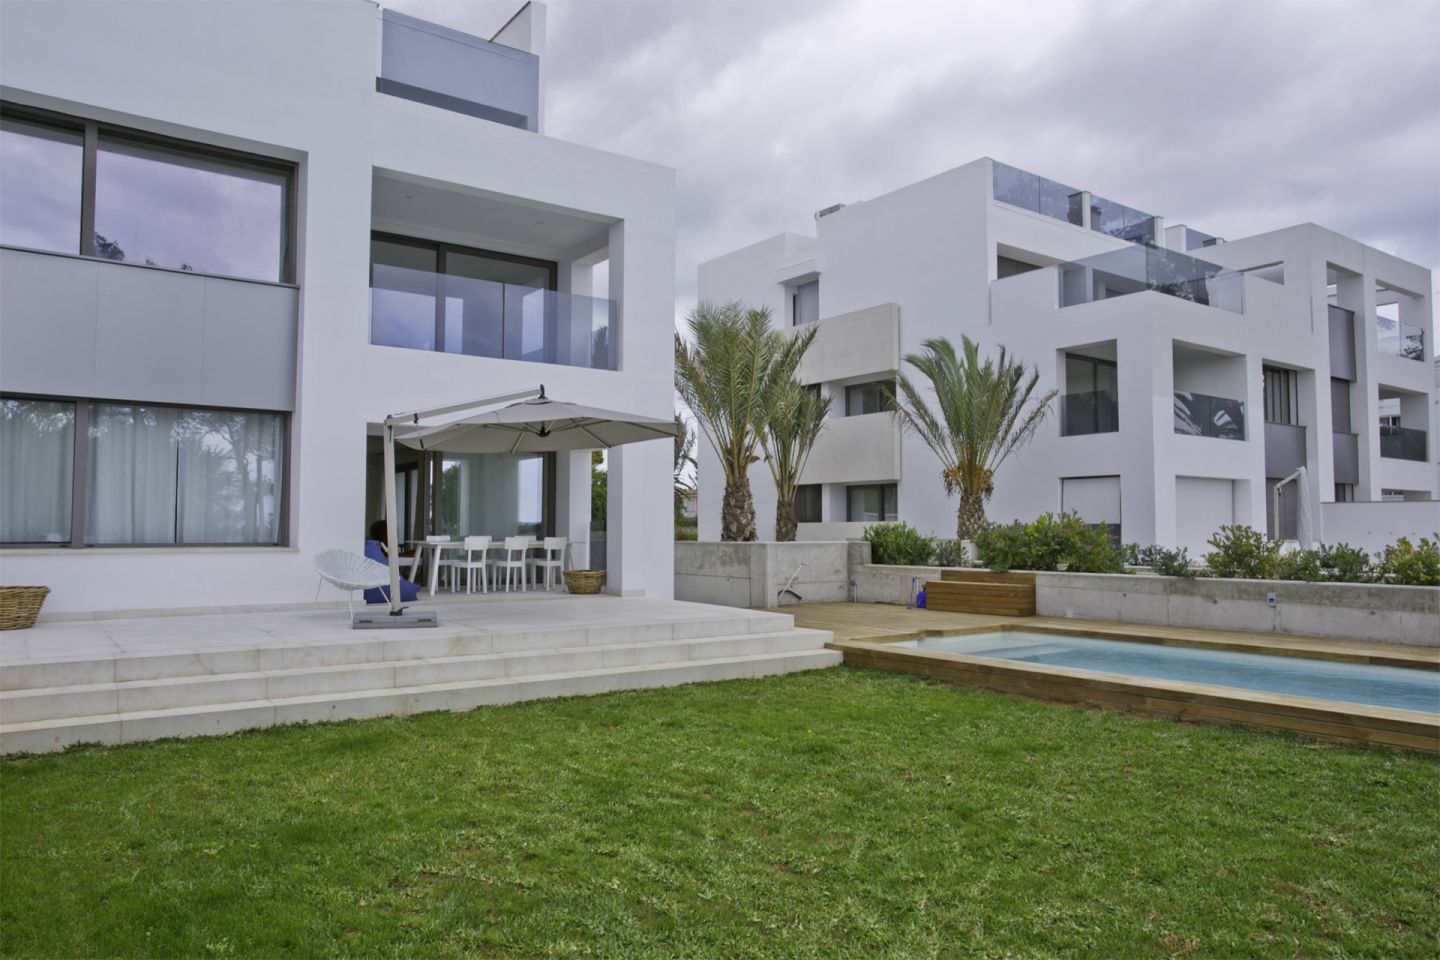 3 Bed Ground Floor for sale in ALCUDIA 6